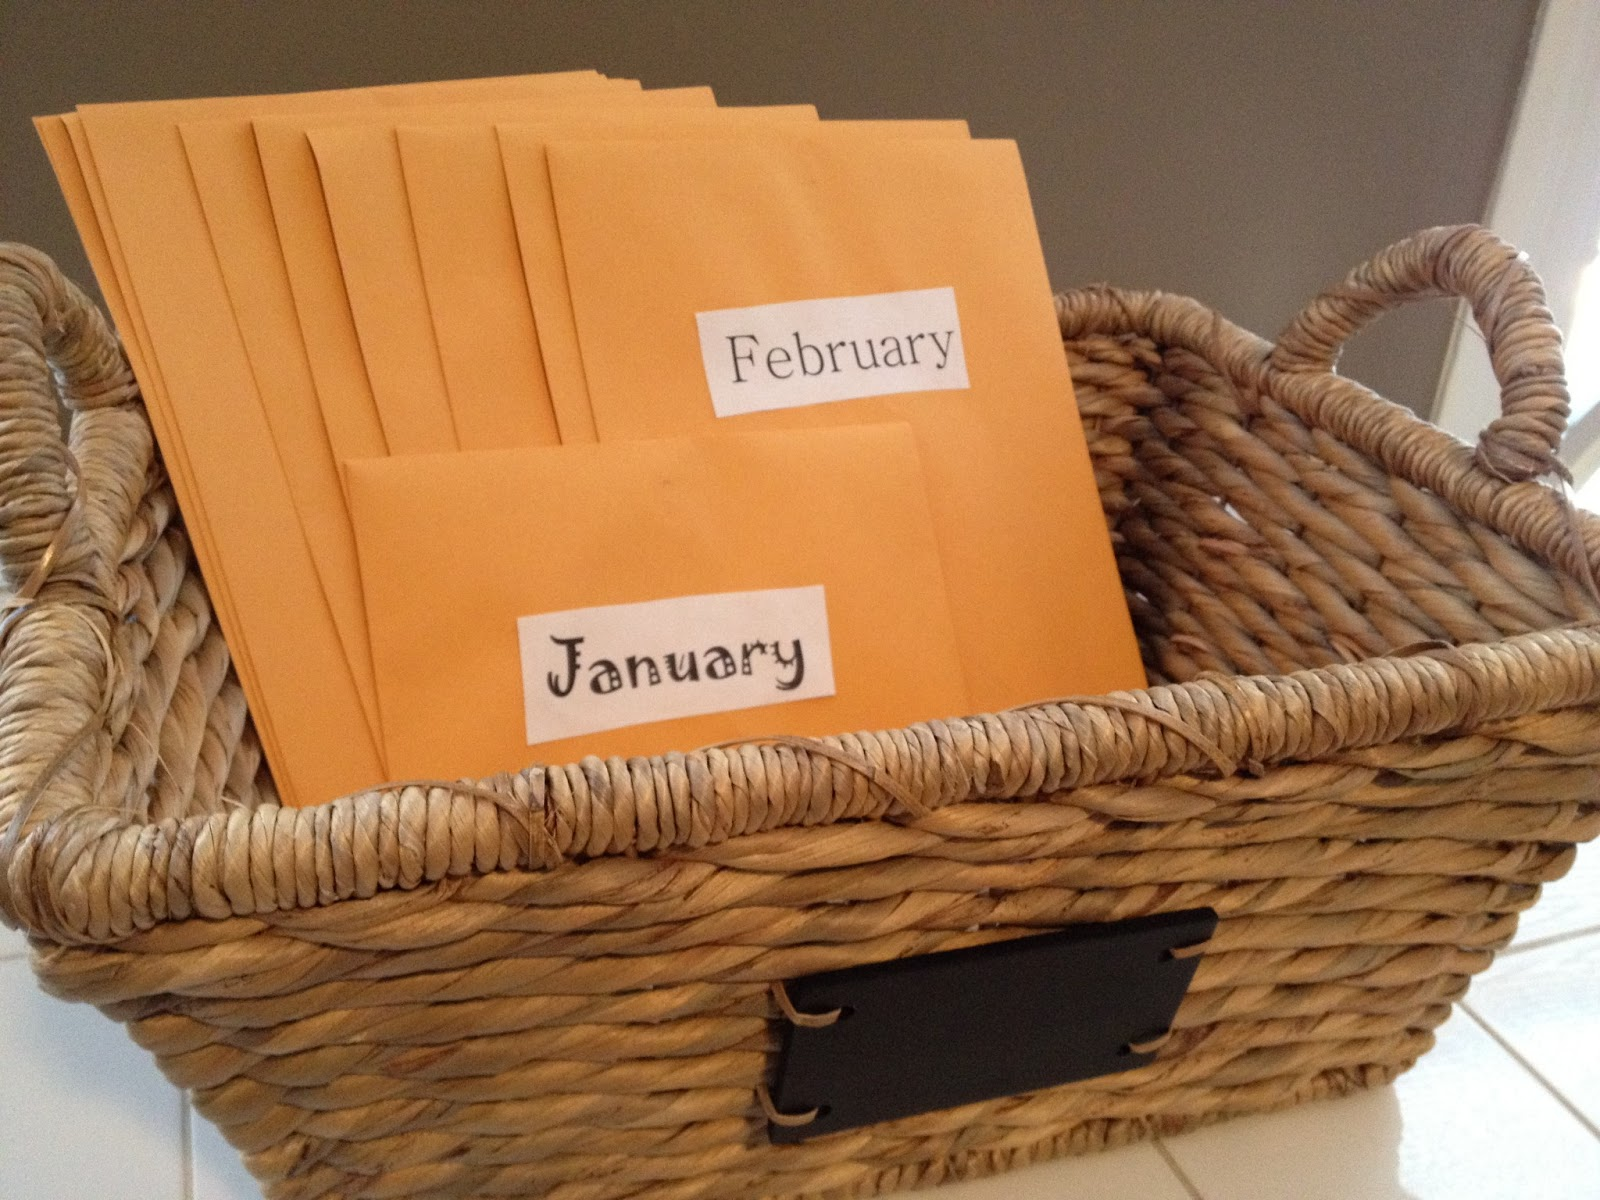 Pretty Little Things: Date Night Basket: A year of pre-planned dates ...